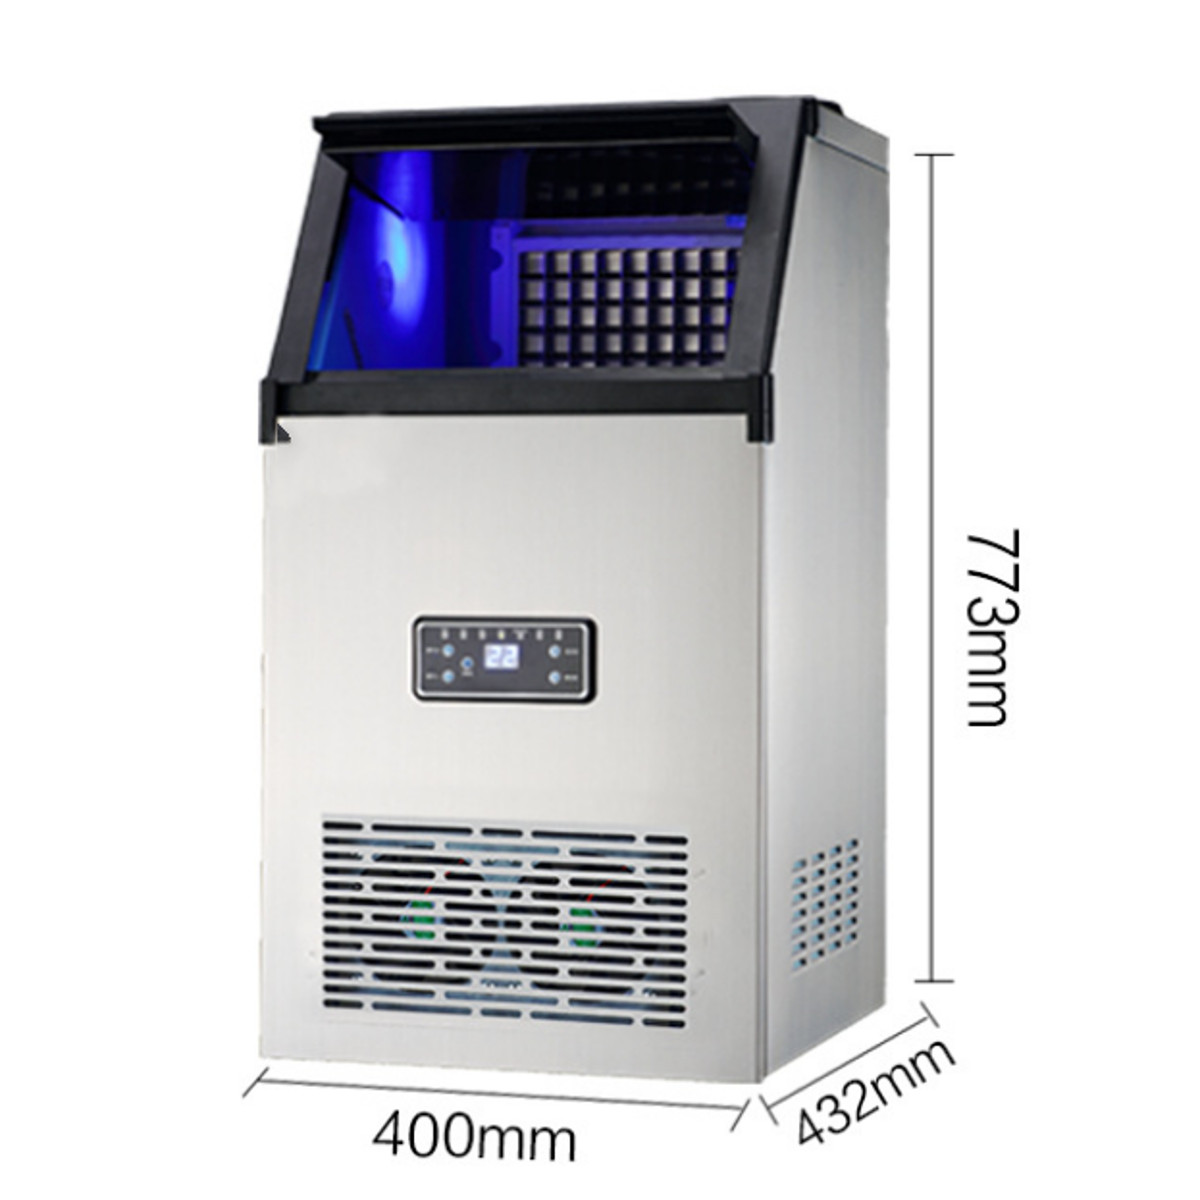 110V 70Kg/24hr Auto Ice Cube Maker Machine Commercial Restaurant Bar Stainless Steel Icemaker